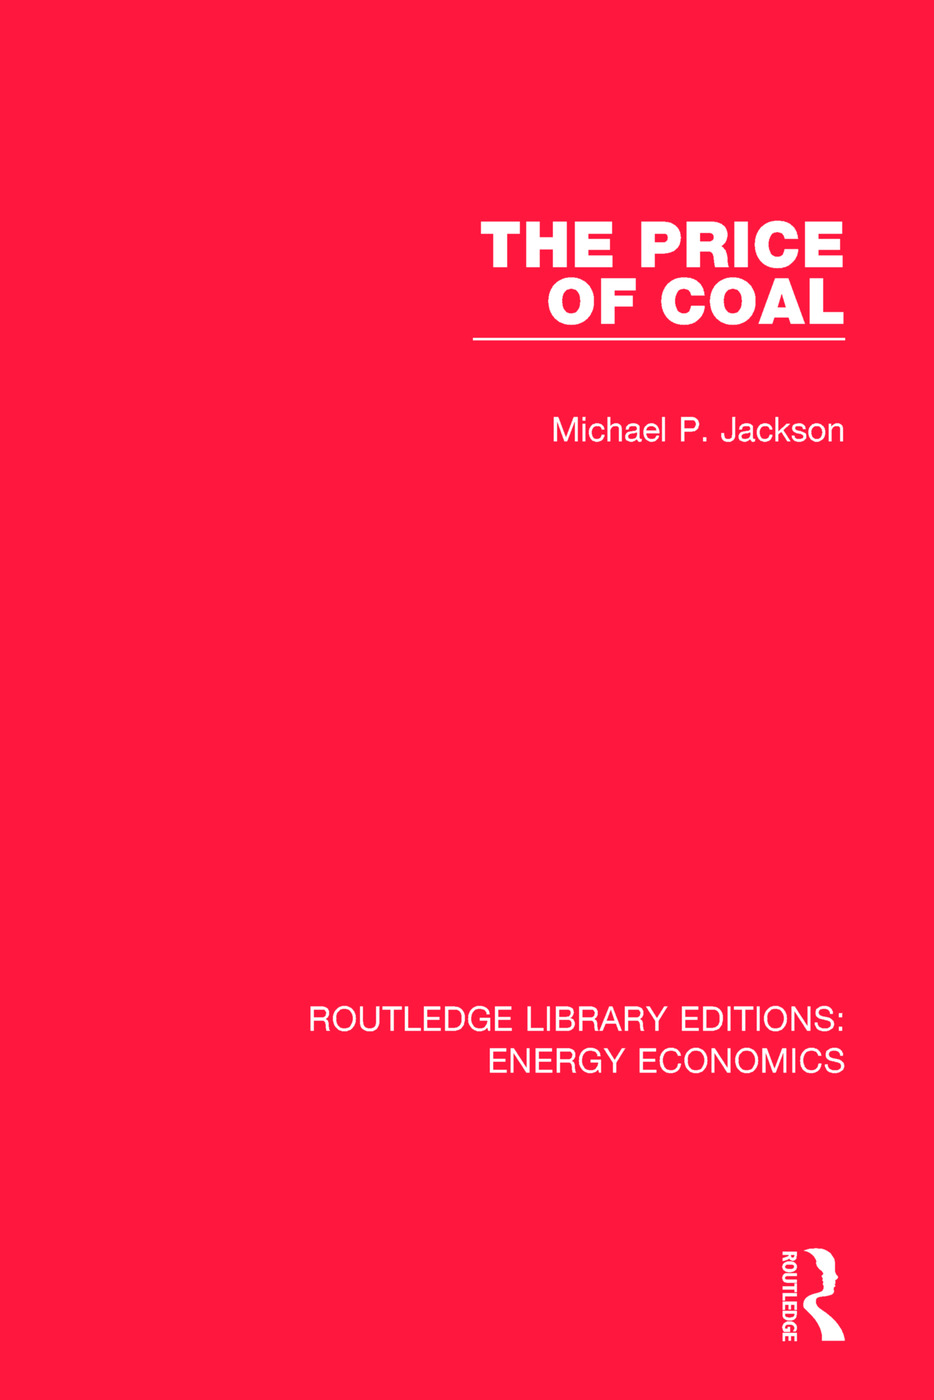 The Price of Coal book cover